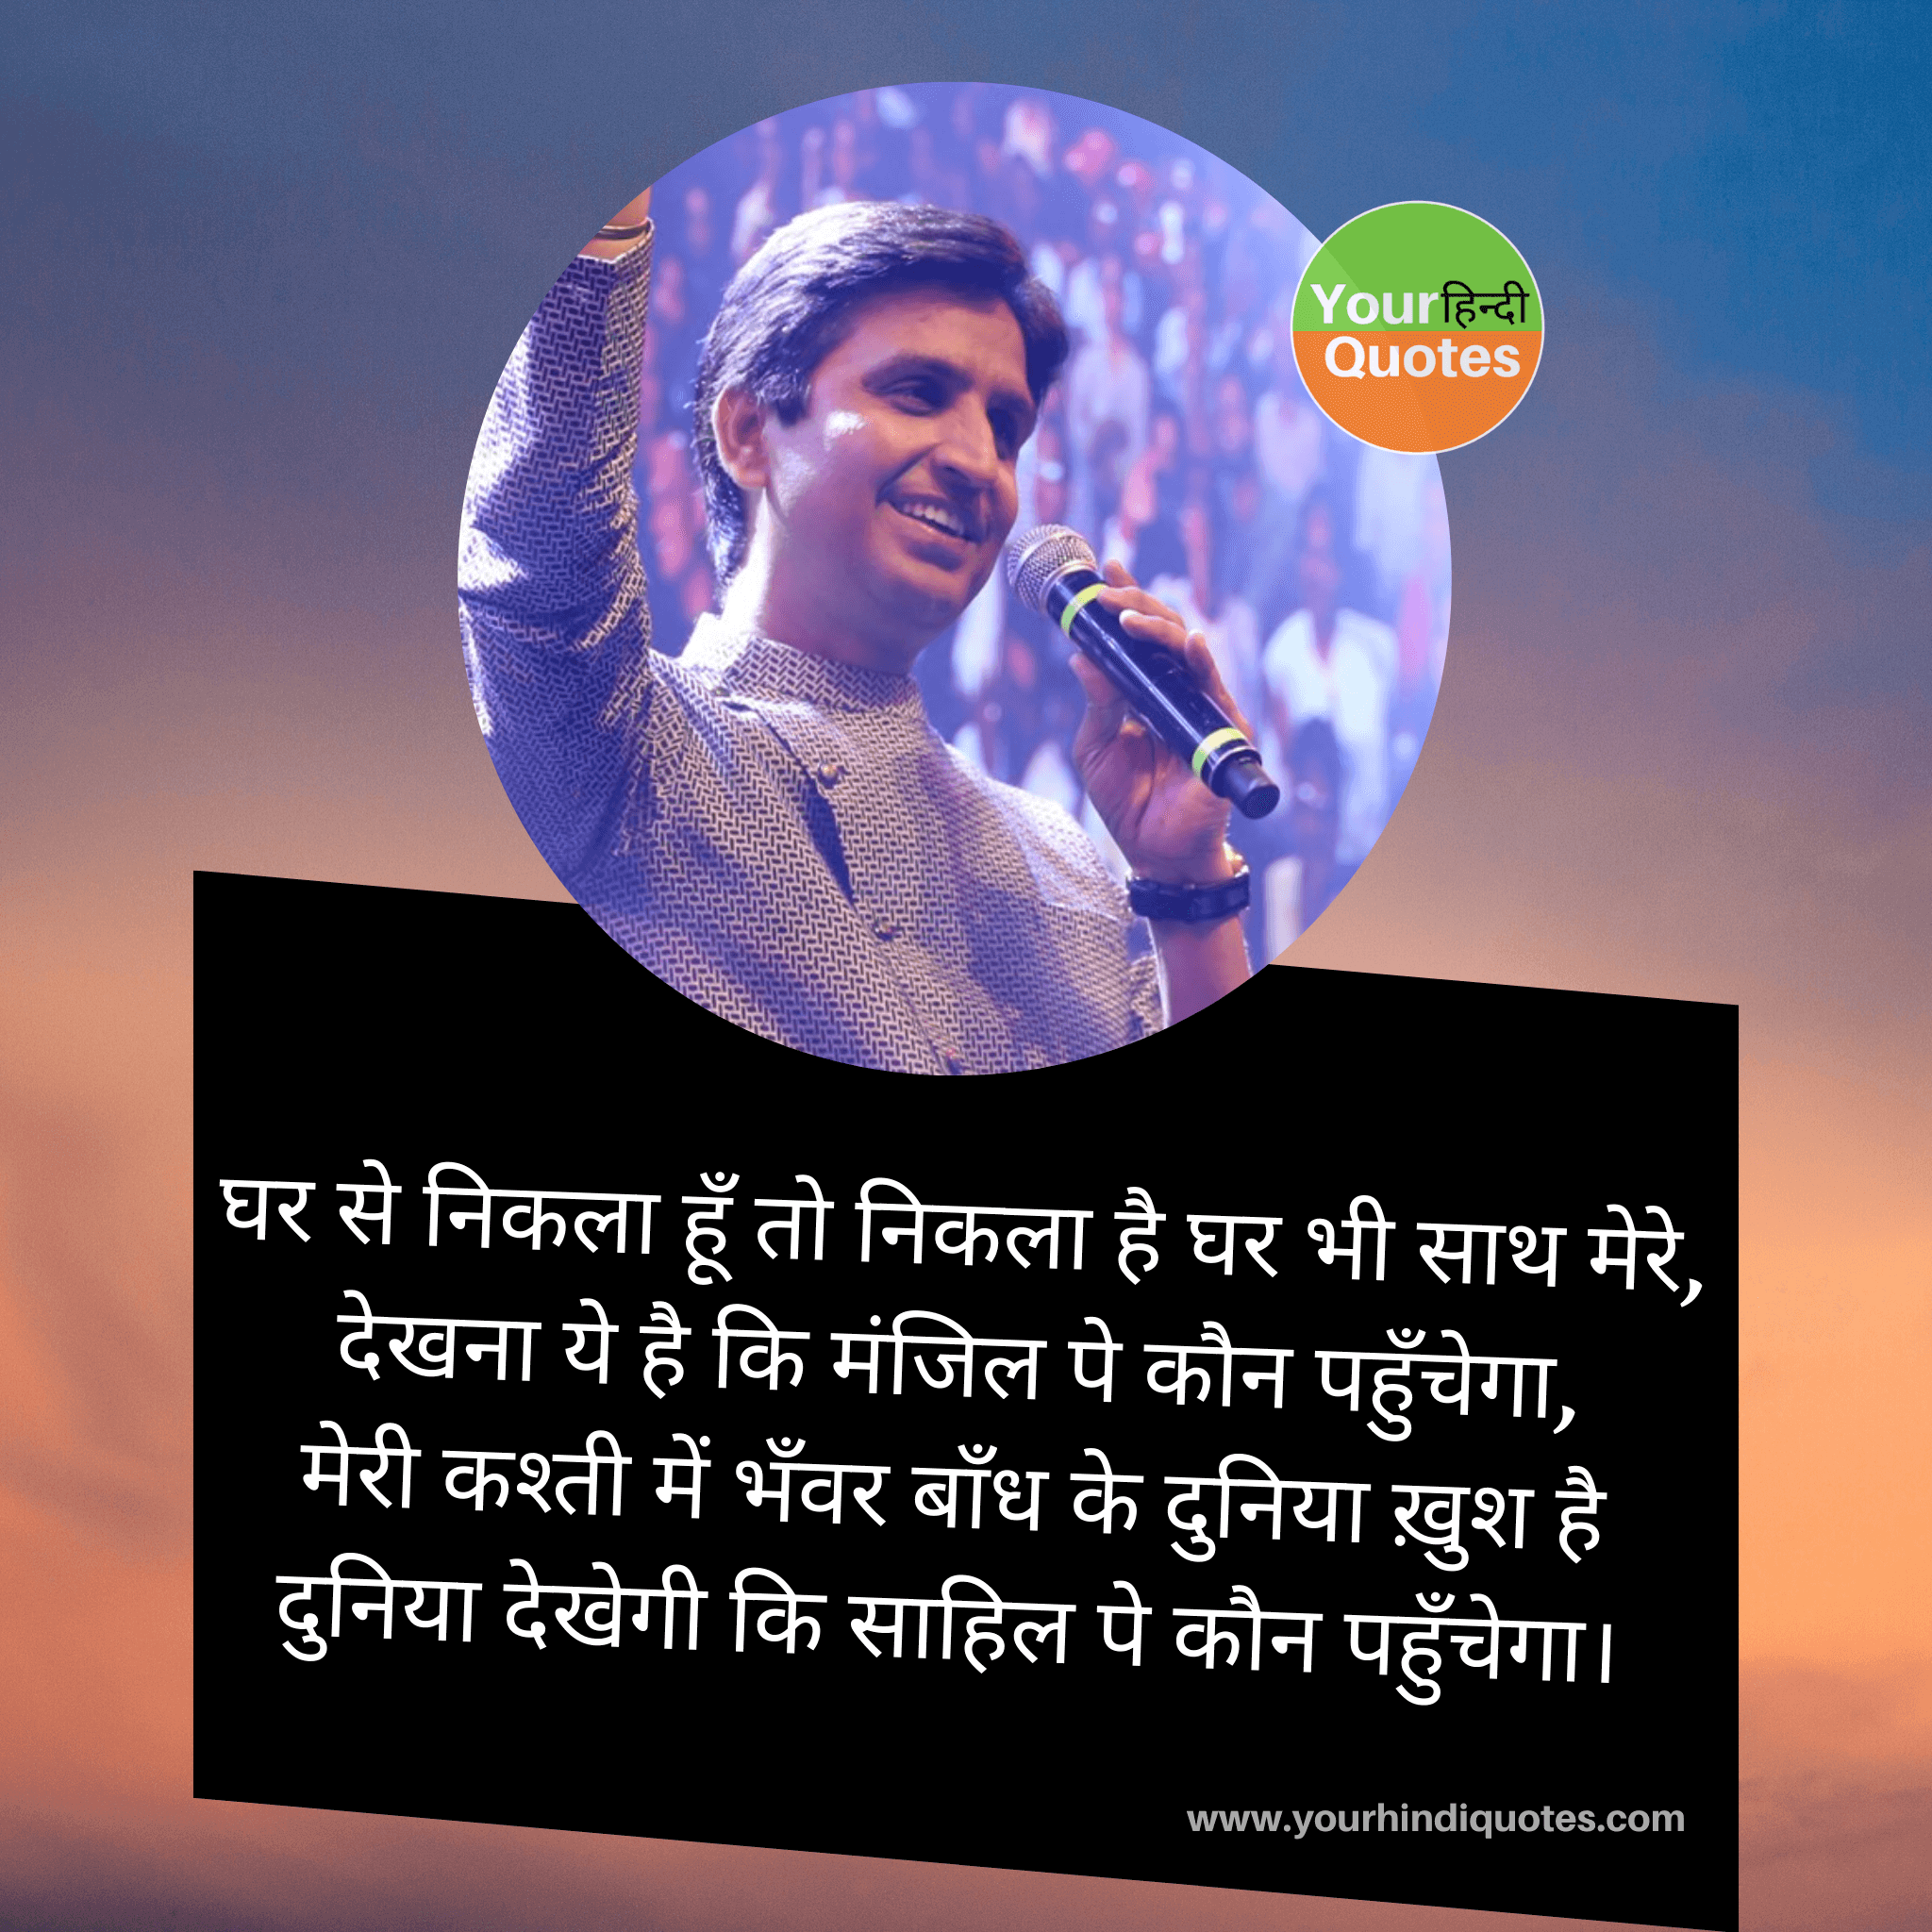 Kumar Vishwas Quotes & Shayari in Hindi